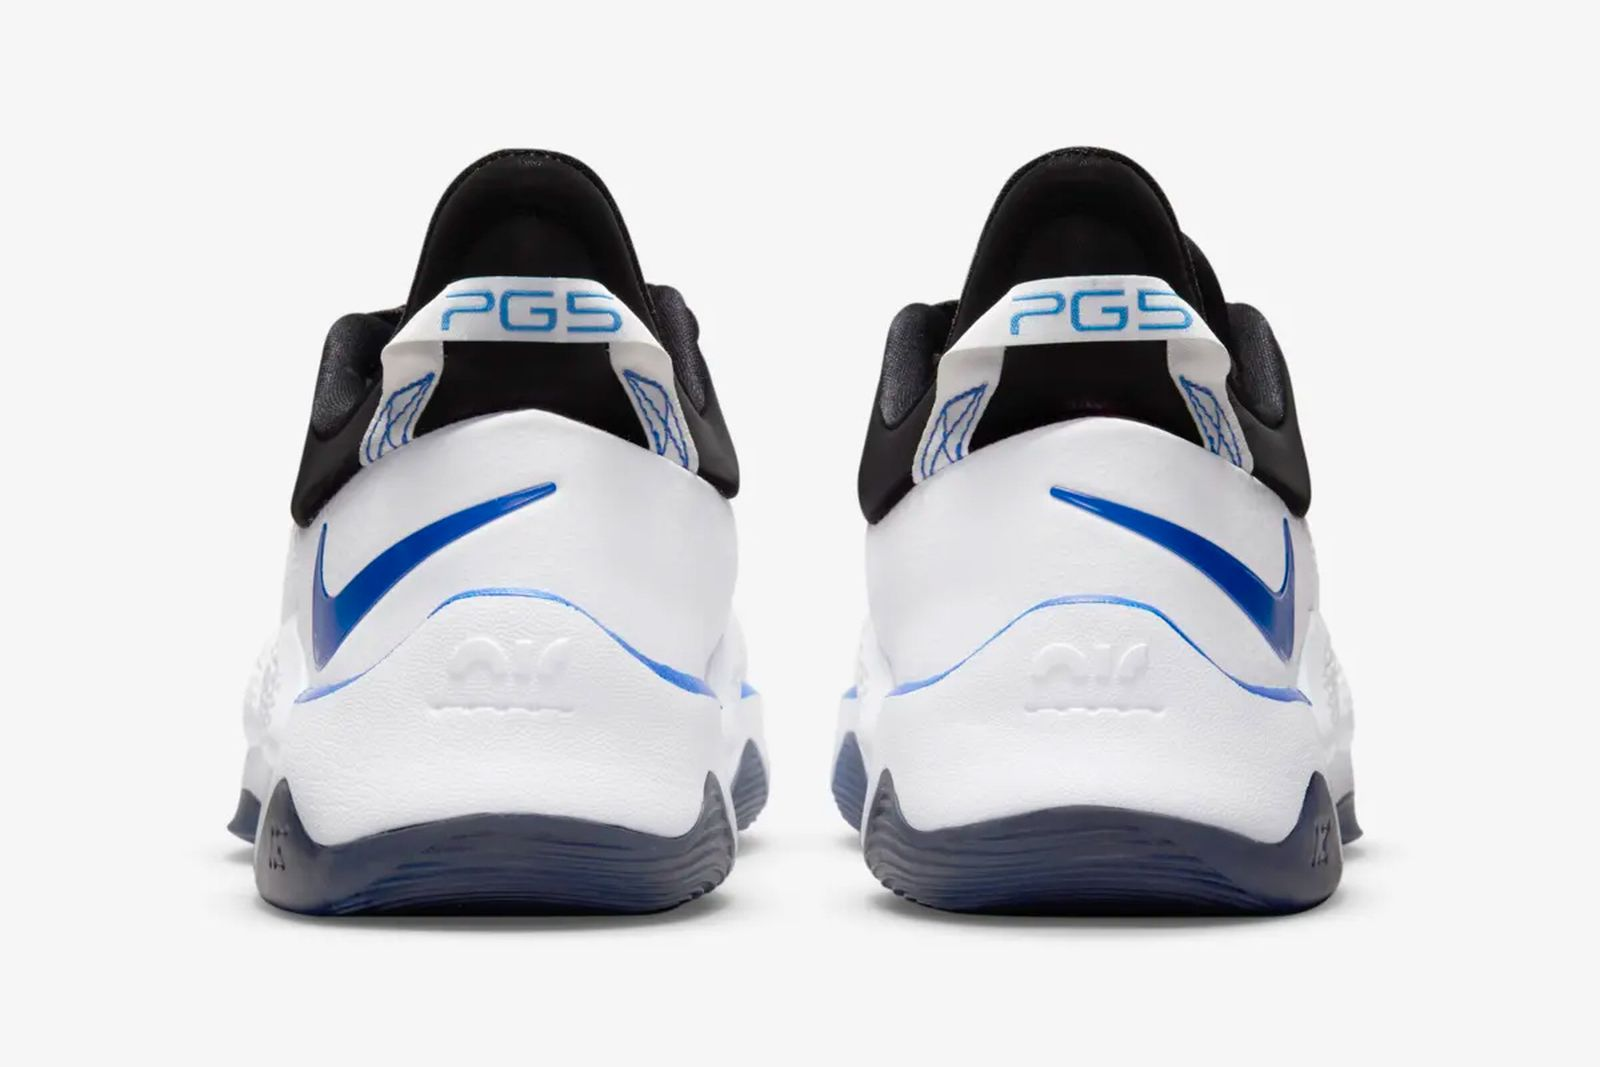 nike-pg-5-playstation-5-release-date-price-03